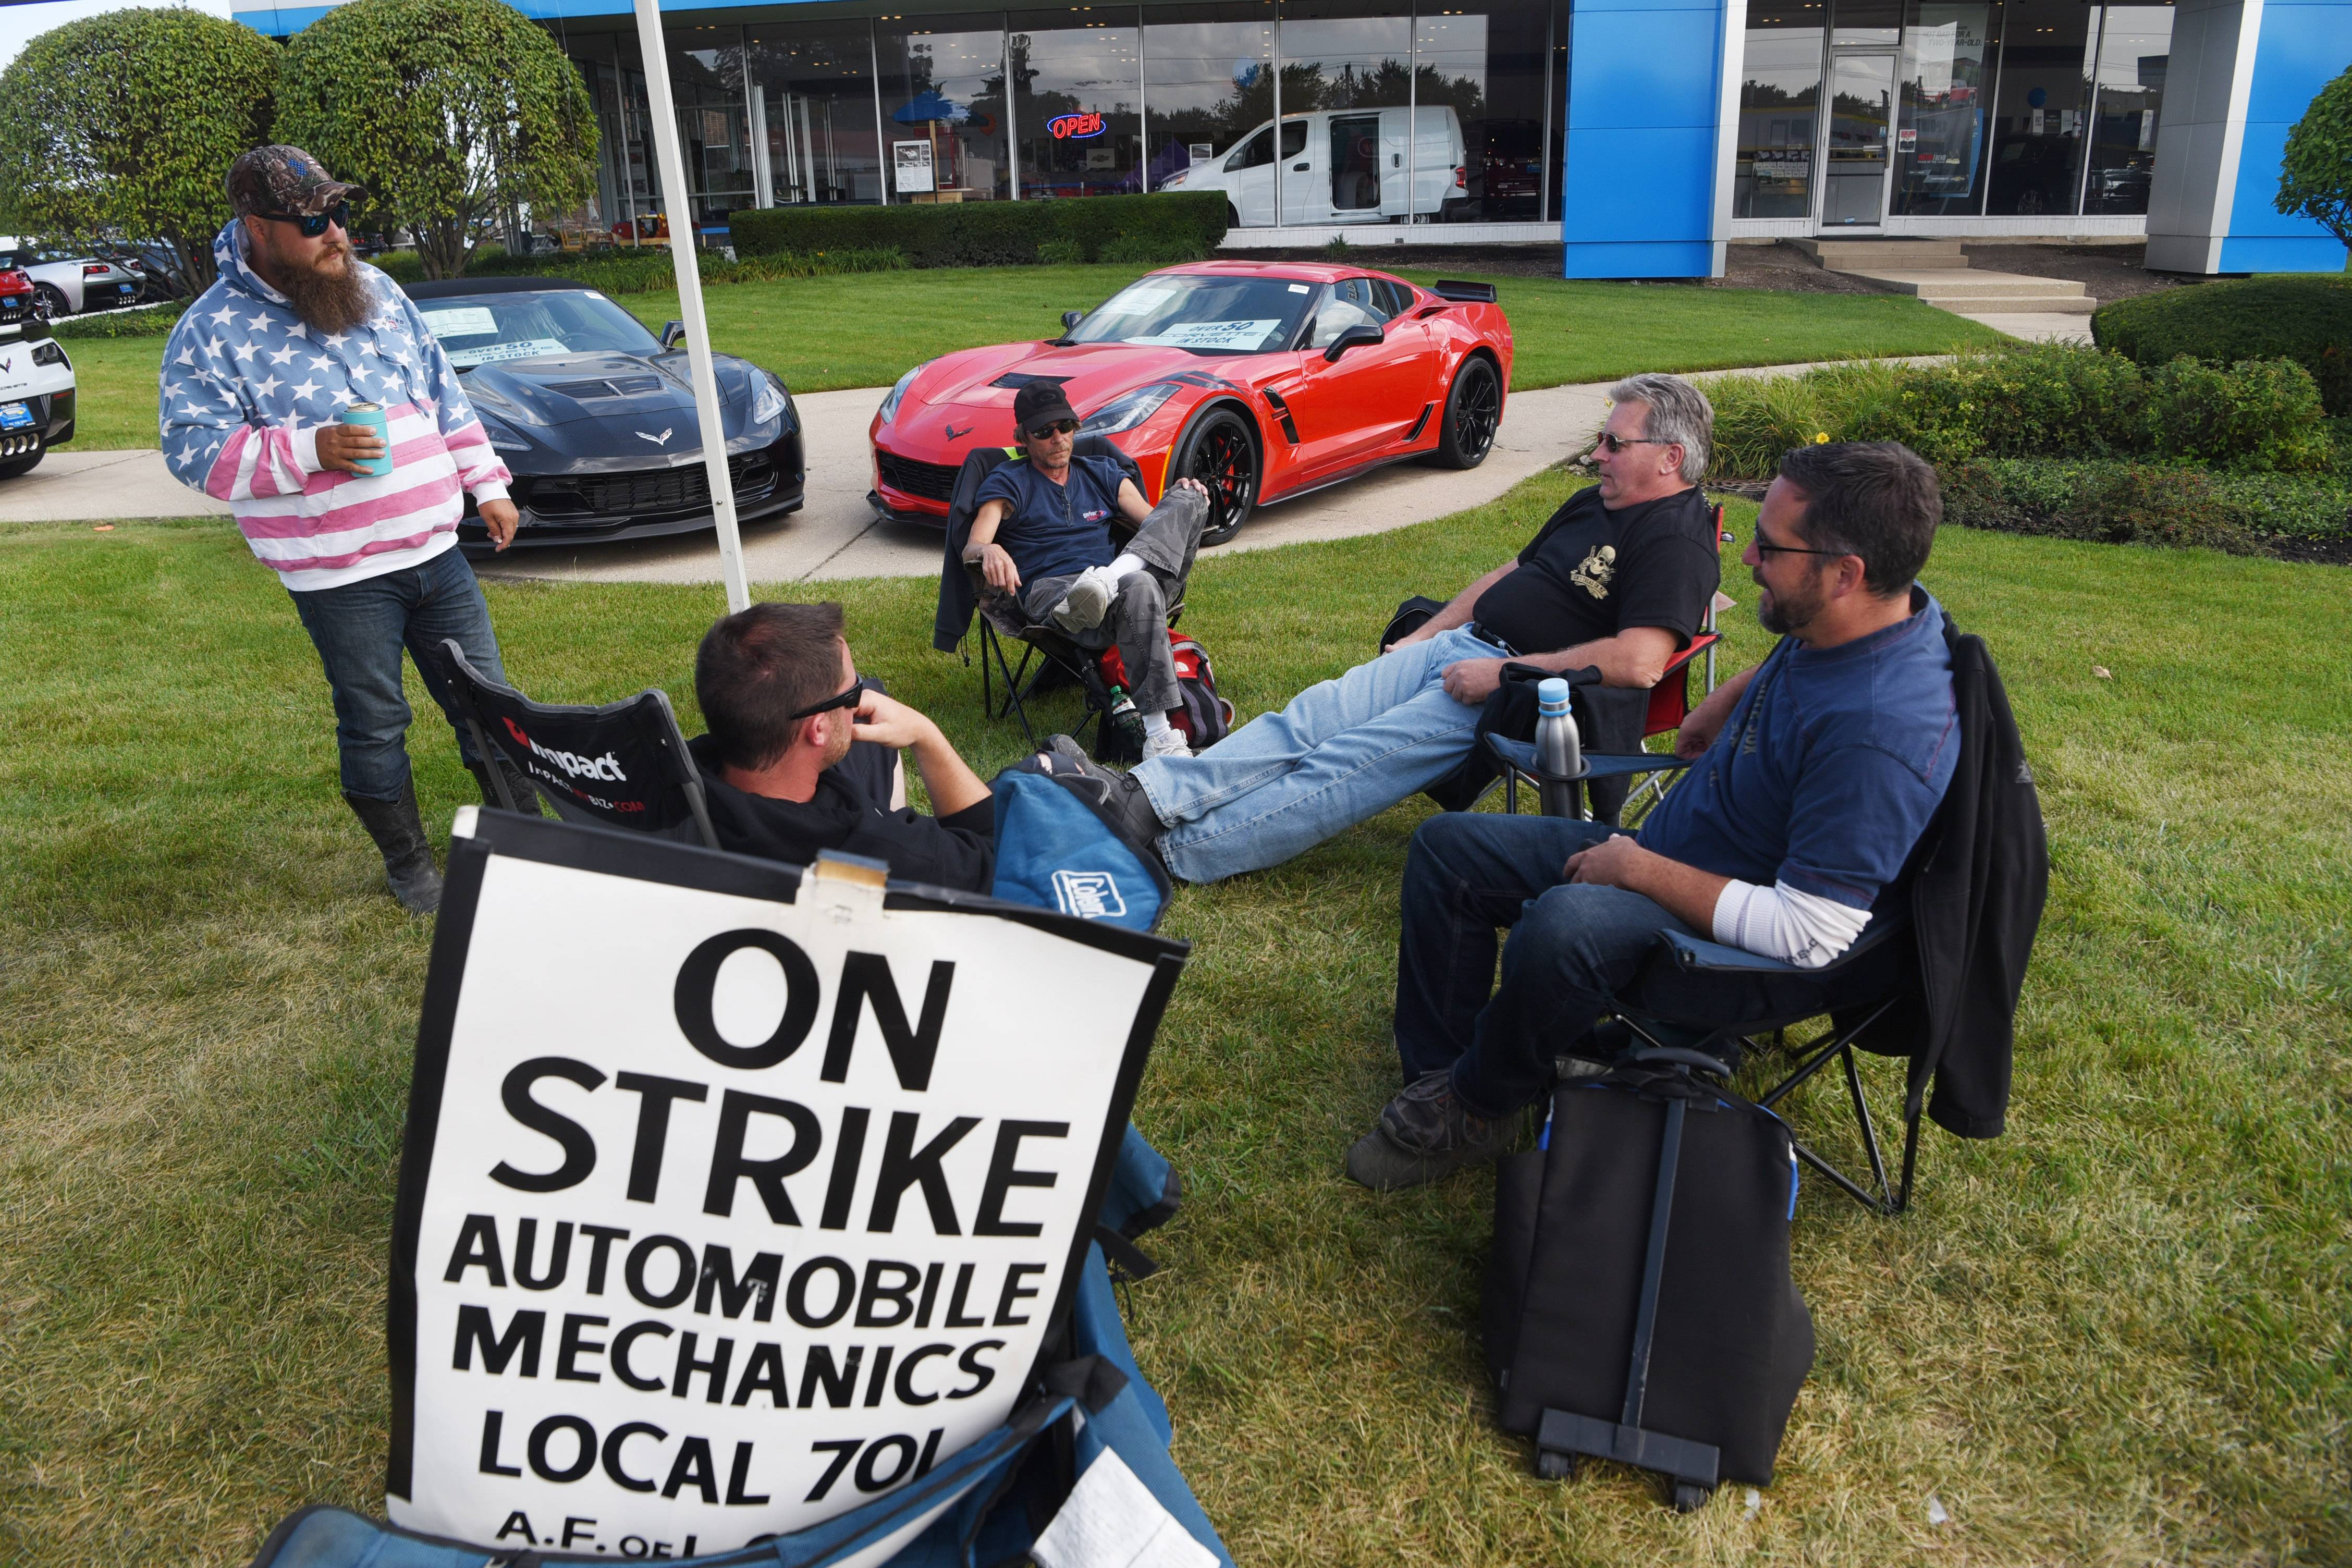 No joy in strike, auto mechanics say